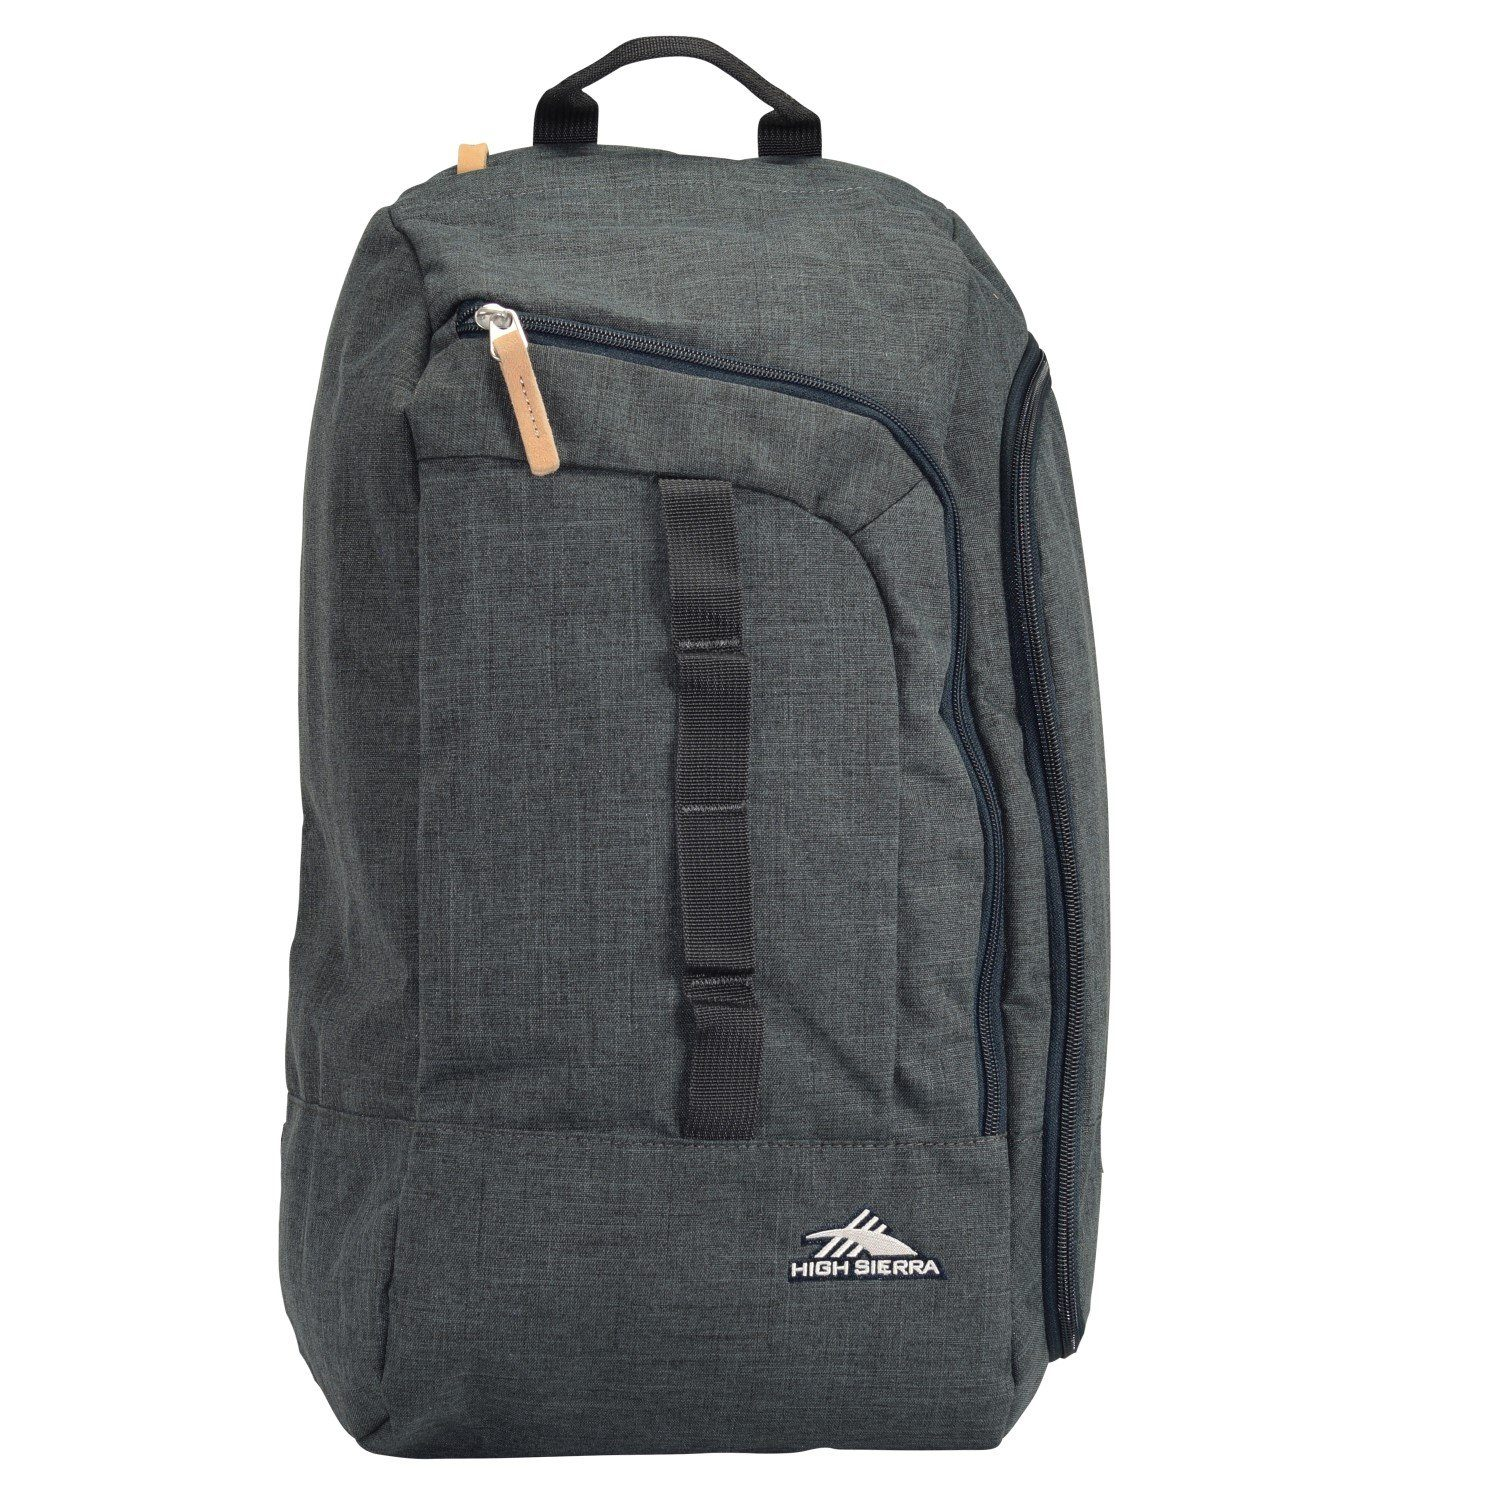 High Sierra Urban Packs Kalu Rucksack 49 cm Laptopfach